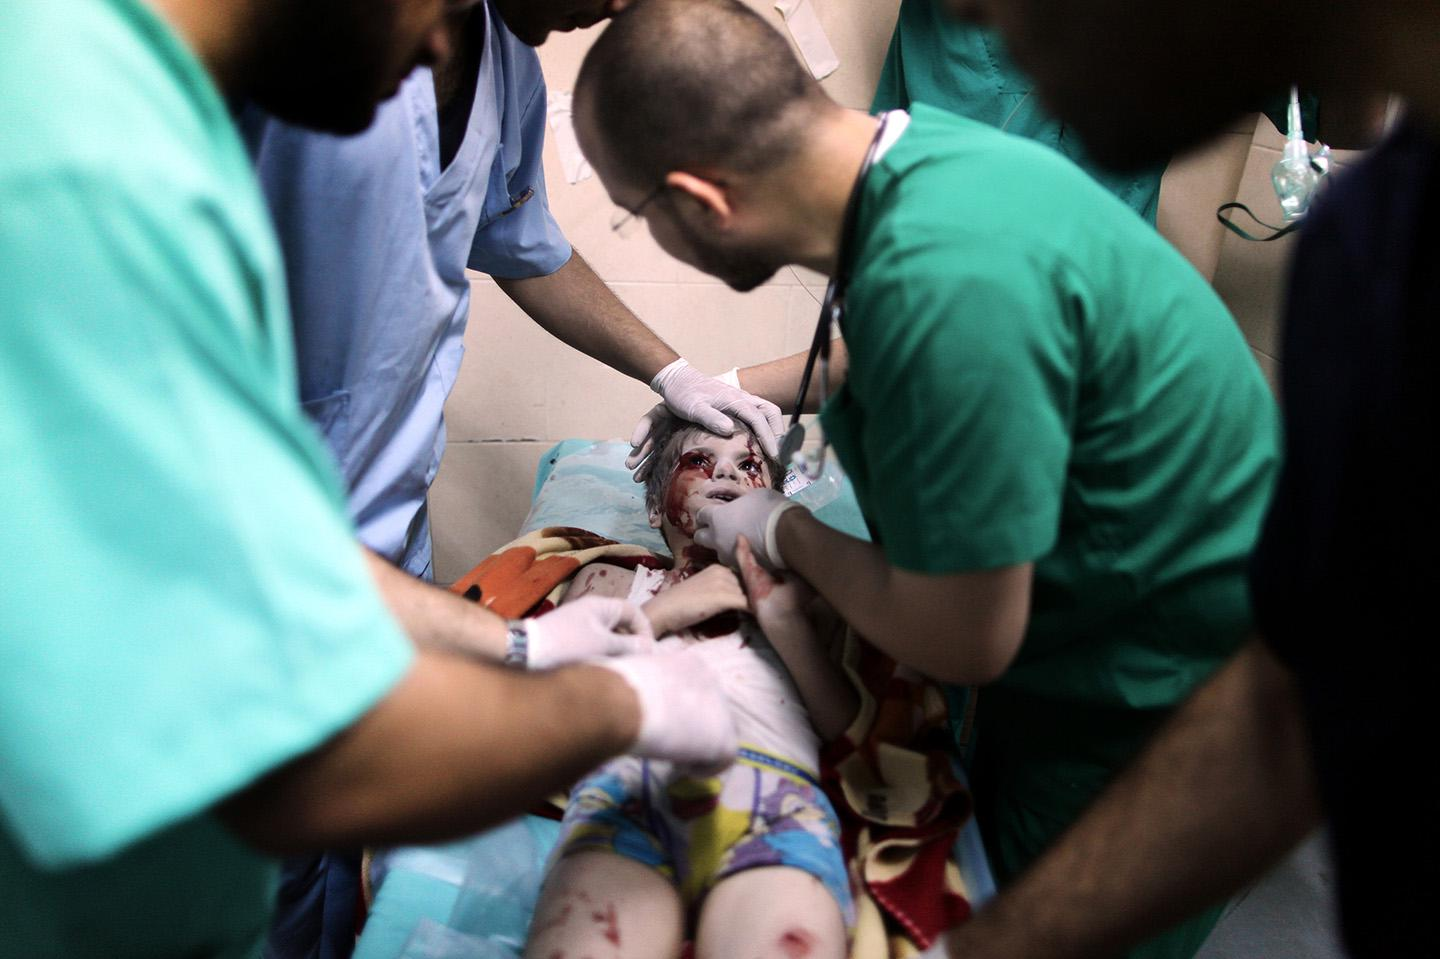 Doctors treat a Palestinian kid, who was injured in an Israeli attack.